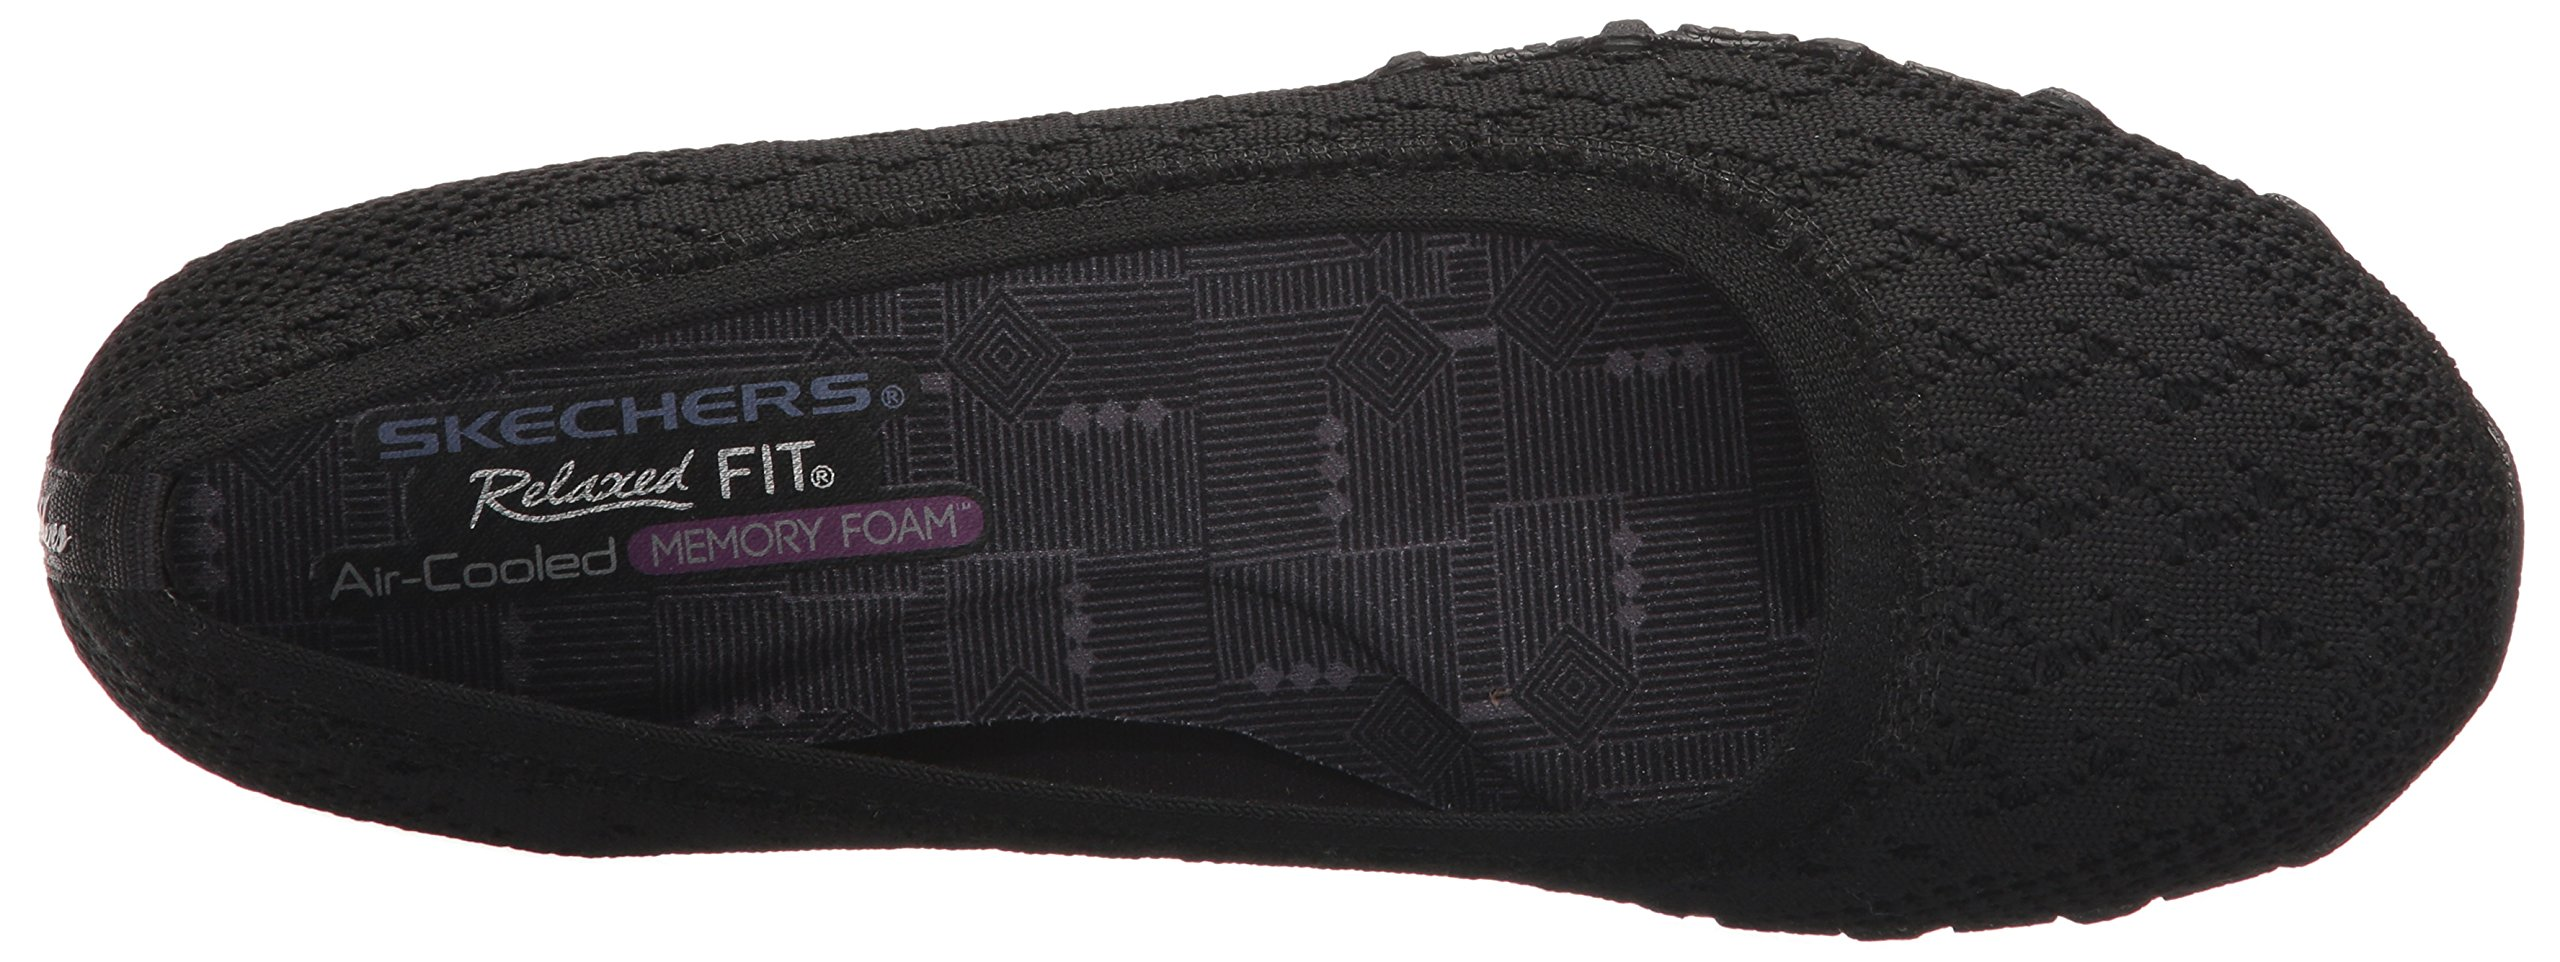 Skechers Women's Bikers-Witty Knit Ballet Flat, black, 10 Extra Wide US by Skechers (Image #8)